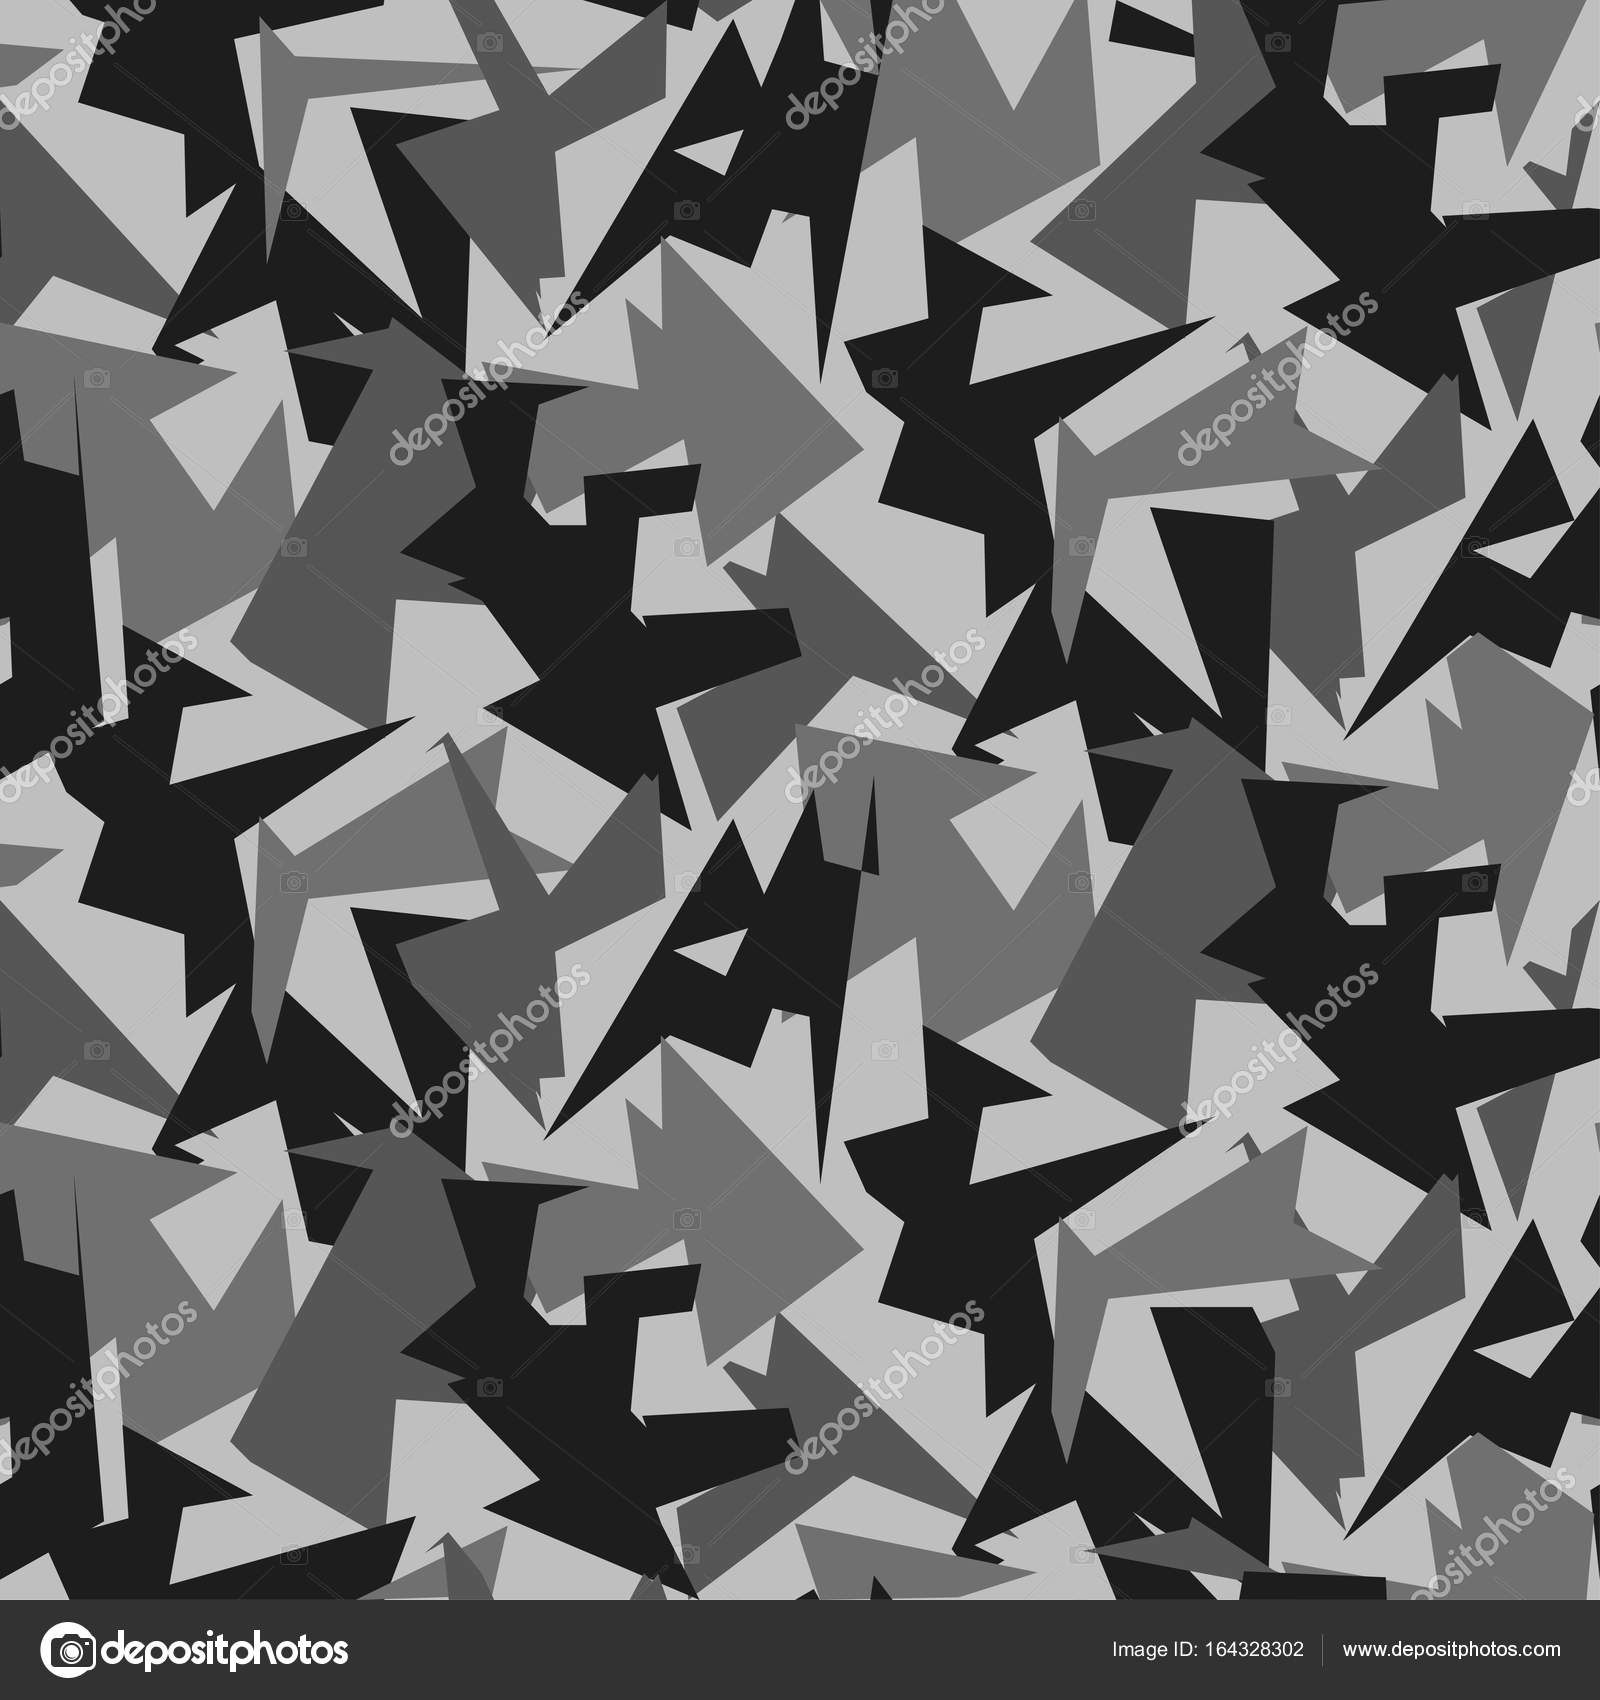 Abstract Vector Grey Military Camouflage Background Pattern Of Geometric Triangles Shapes For Army Clothing By CRVL